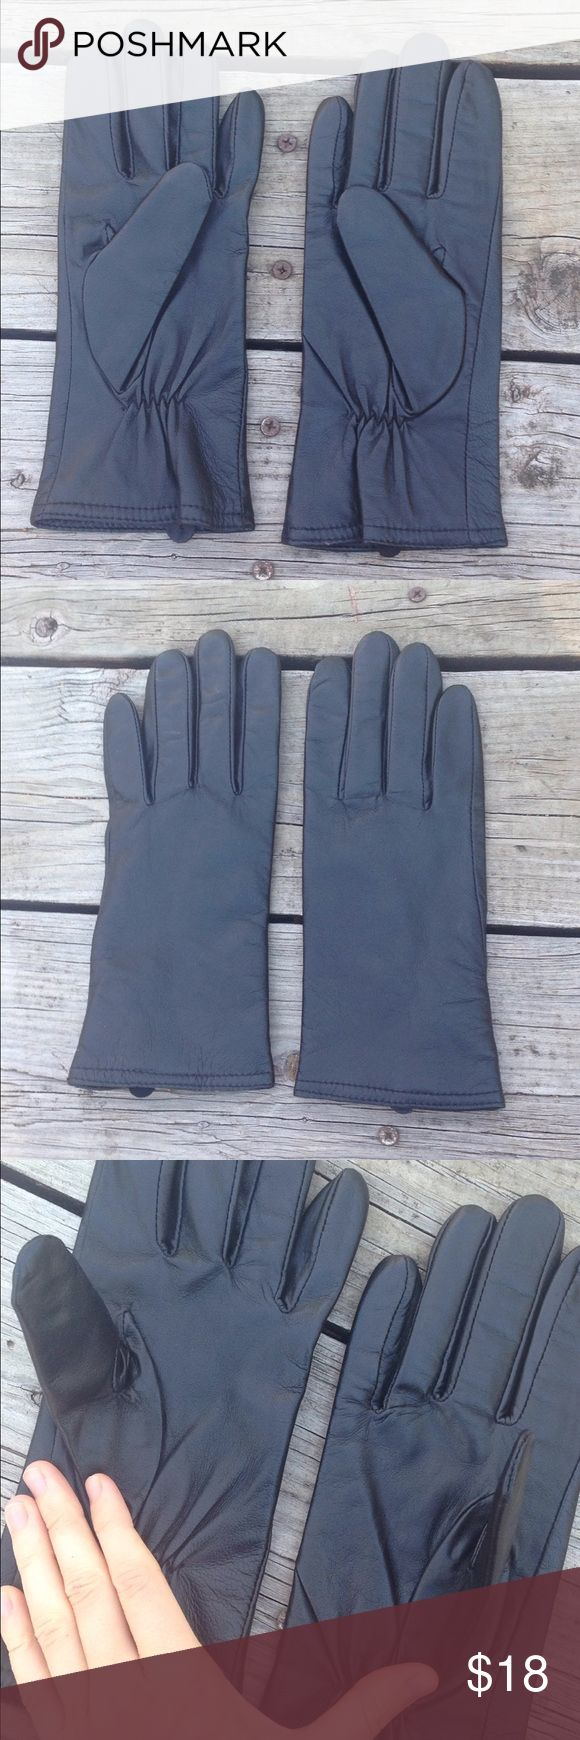 Thinsulate Black Leather Gloves Ladies Black Leather Thinsulate gloves. The Shell is 100% Leather with a 100% polyester lining. The interling is olfen and poly. Size large. Thinsulate Accessories Gloves & Mittens